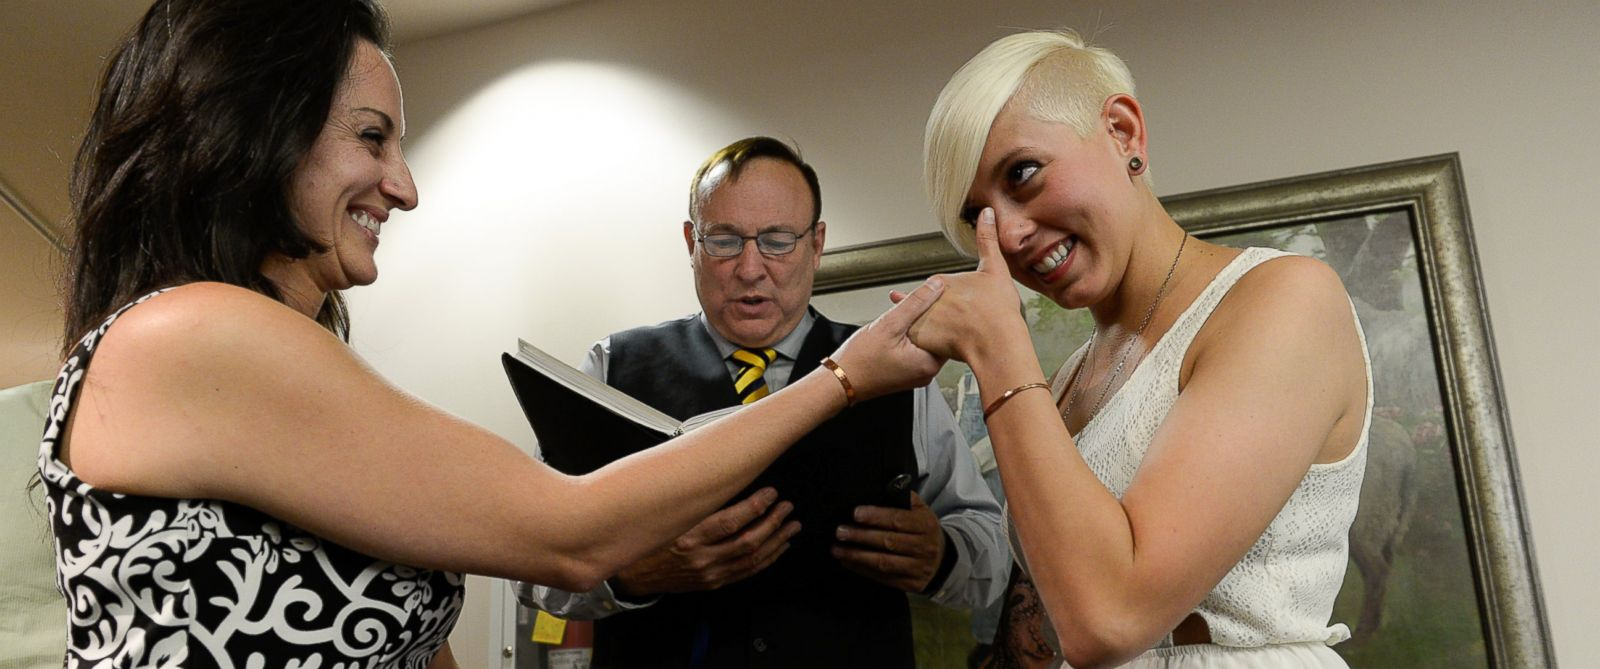 PHOTO: Sen. Jim Dabakis marries Yolanda Pascua and Laekin Rogers on Oct. 6, 2014, at the Salt Lake County Complex in Utah.